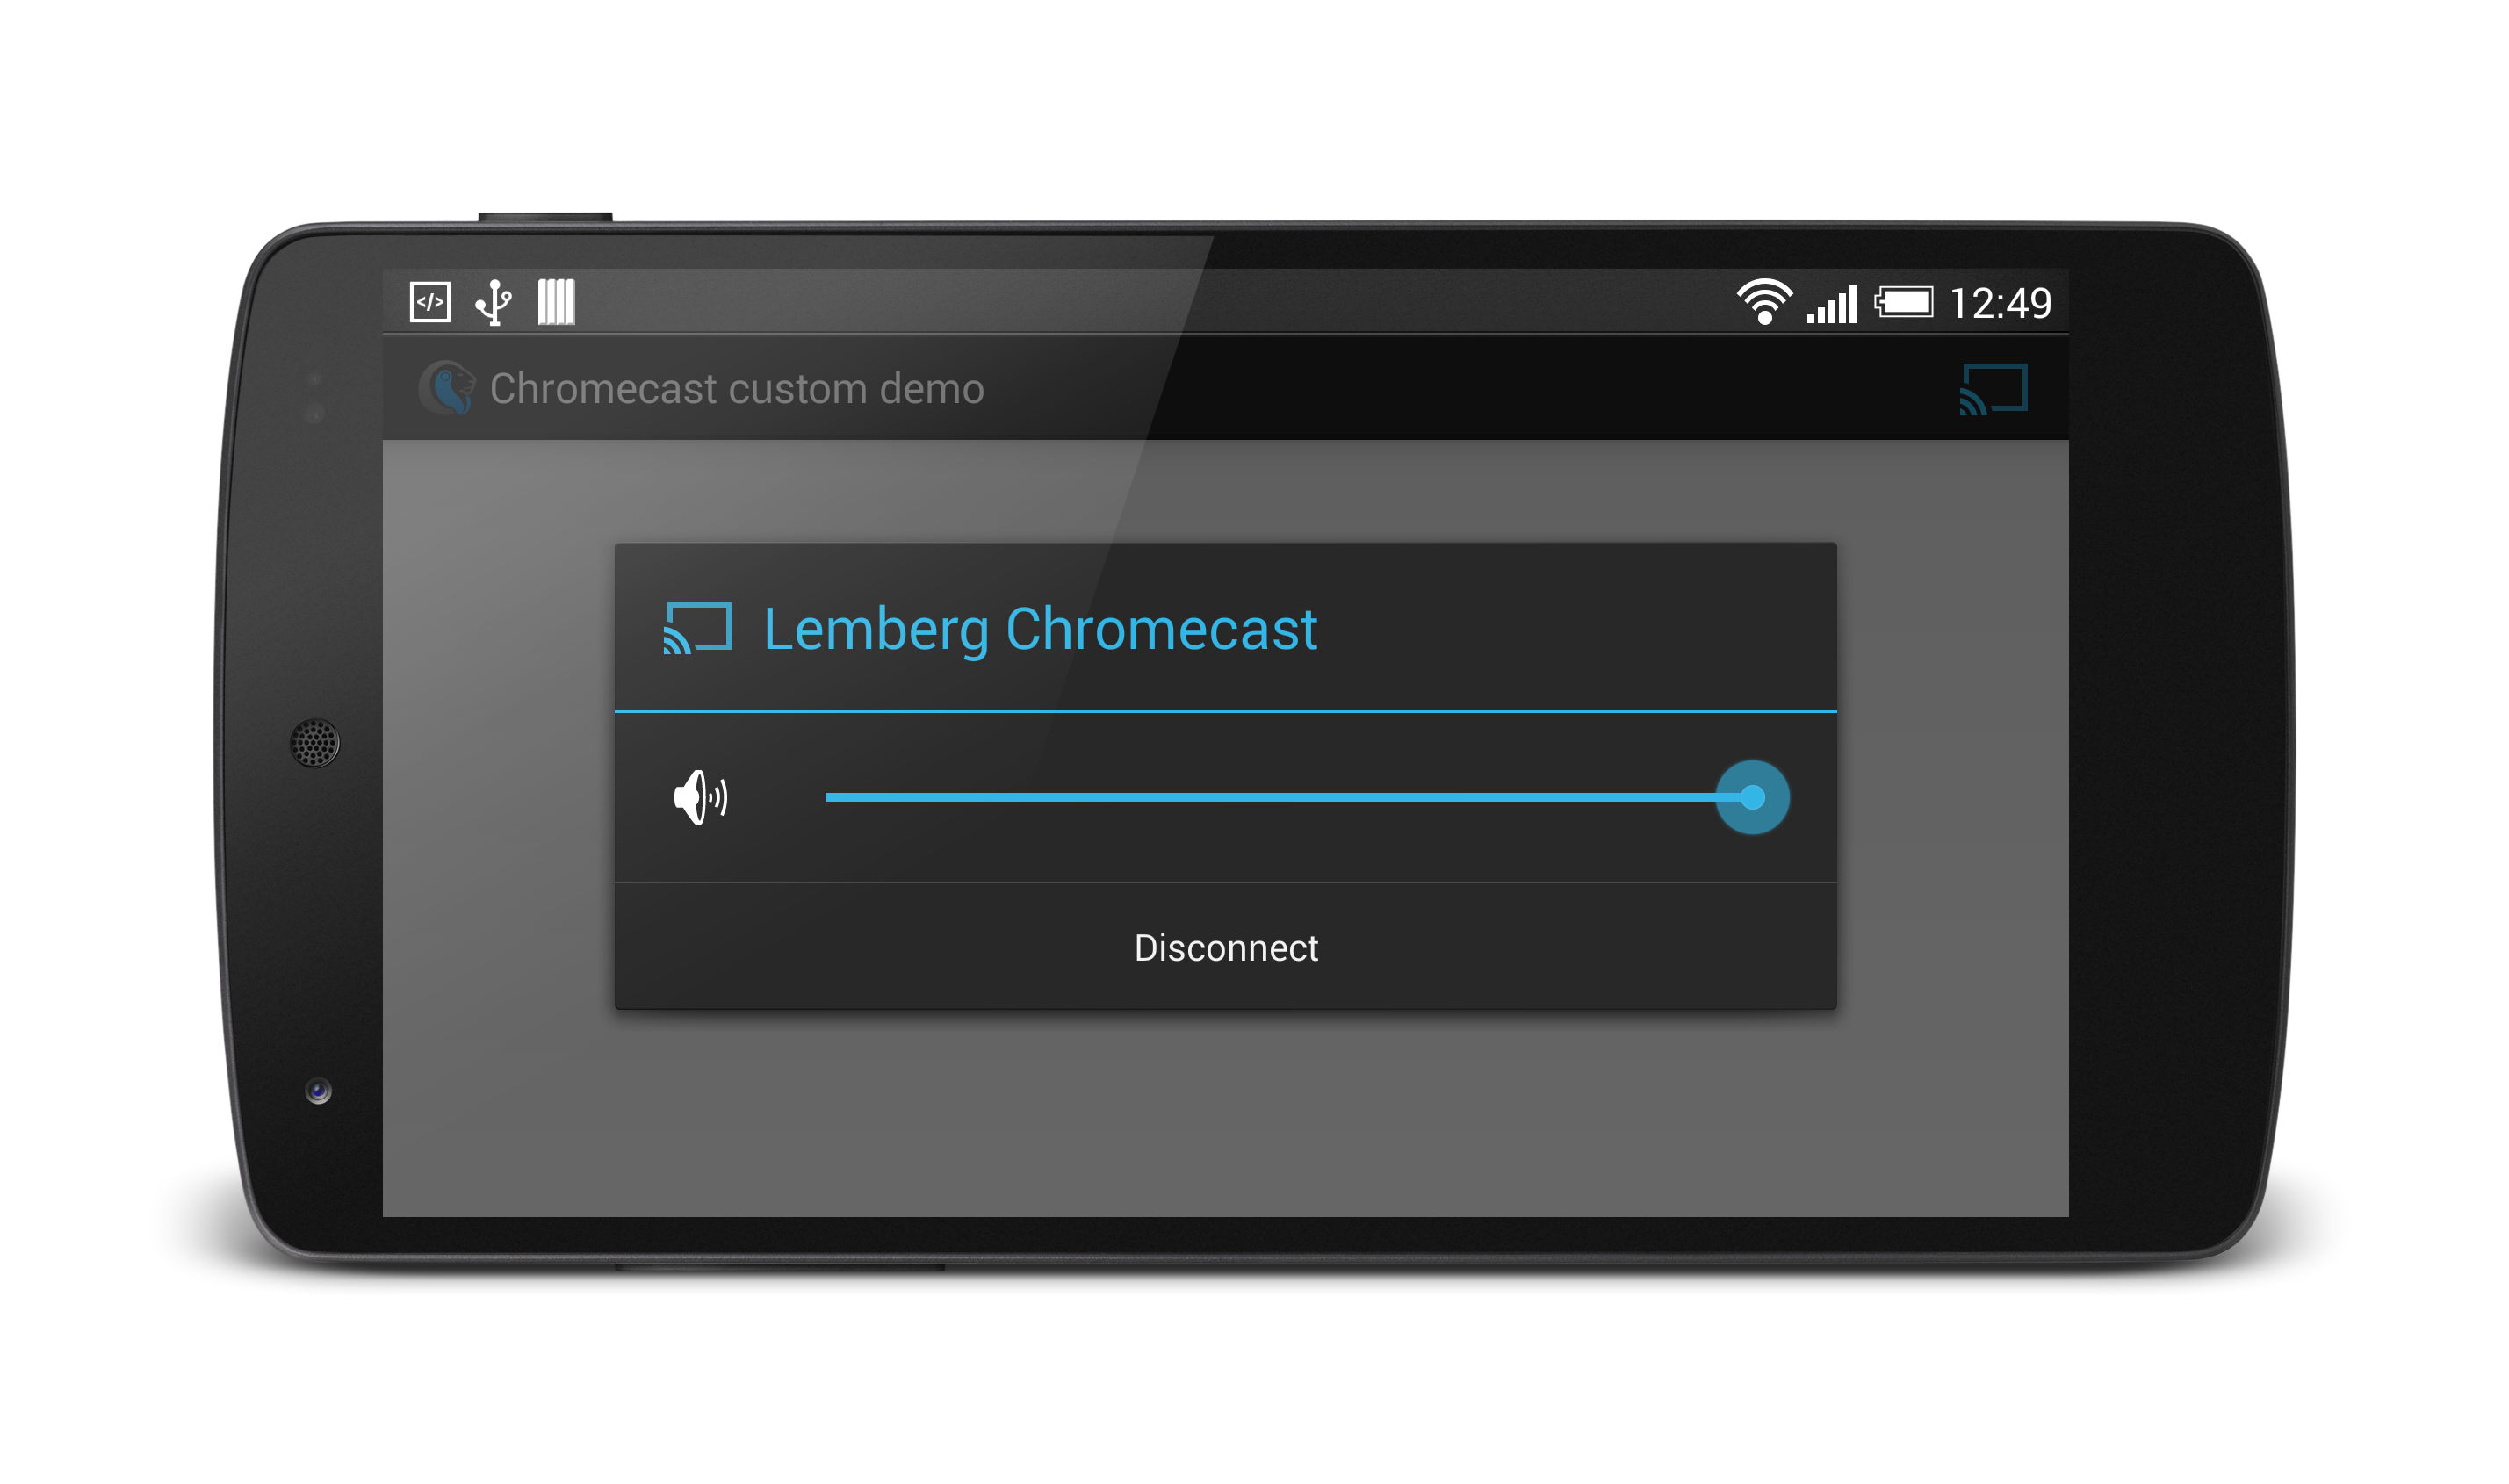 Connecting Chromecast device. Chromecast Android tutorial by Lemberg